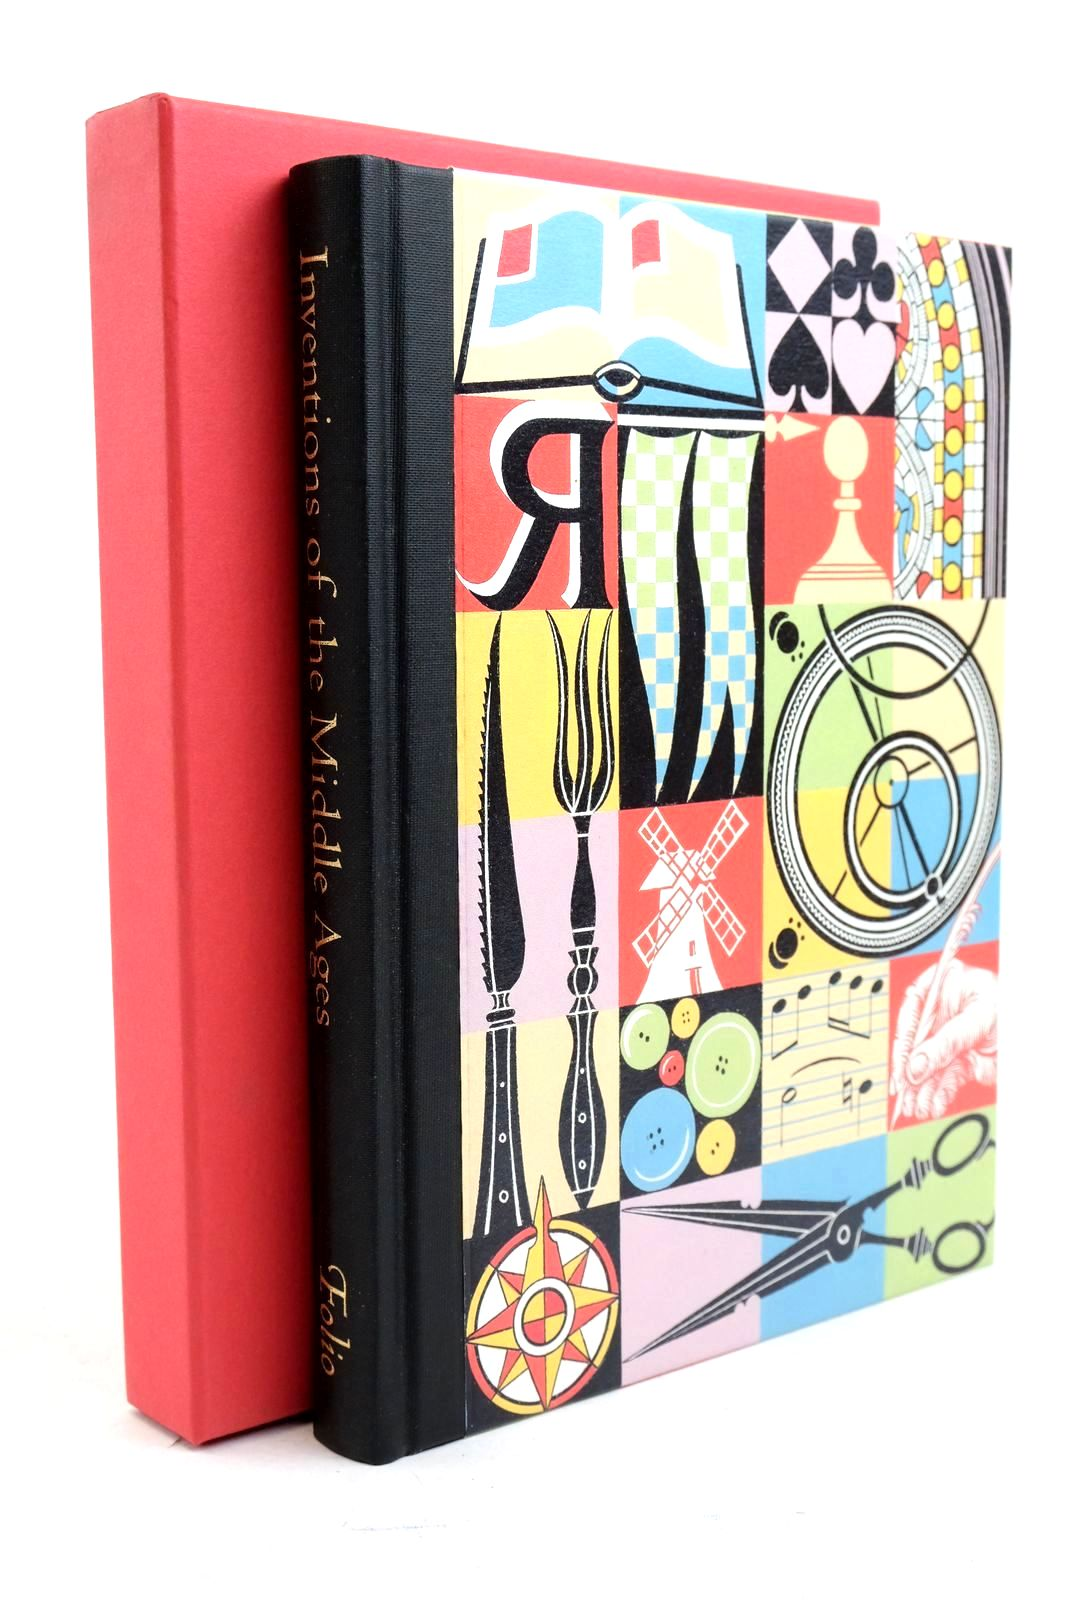 Photo of INVENTIONS OF THE MIDDLE AGES written by Frugoni, Chiara published by Folio Society (STOCK CODE: 1321051)  for sale by Stella & Rose's Books